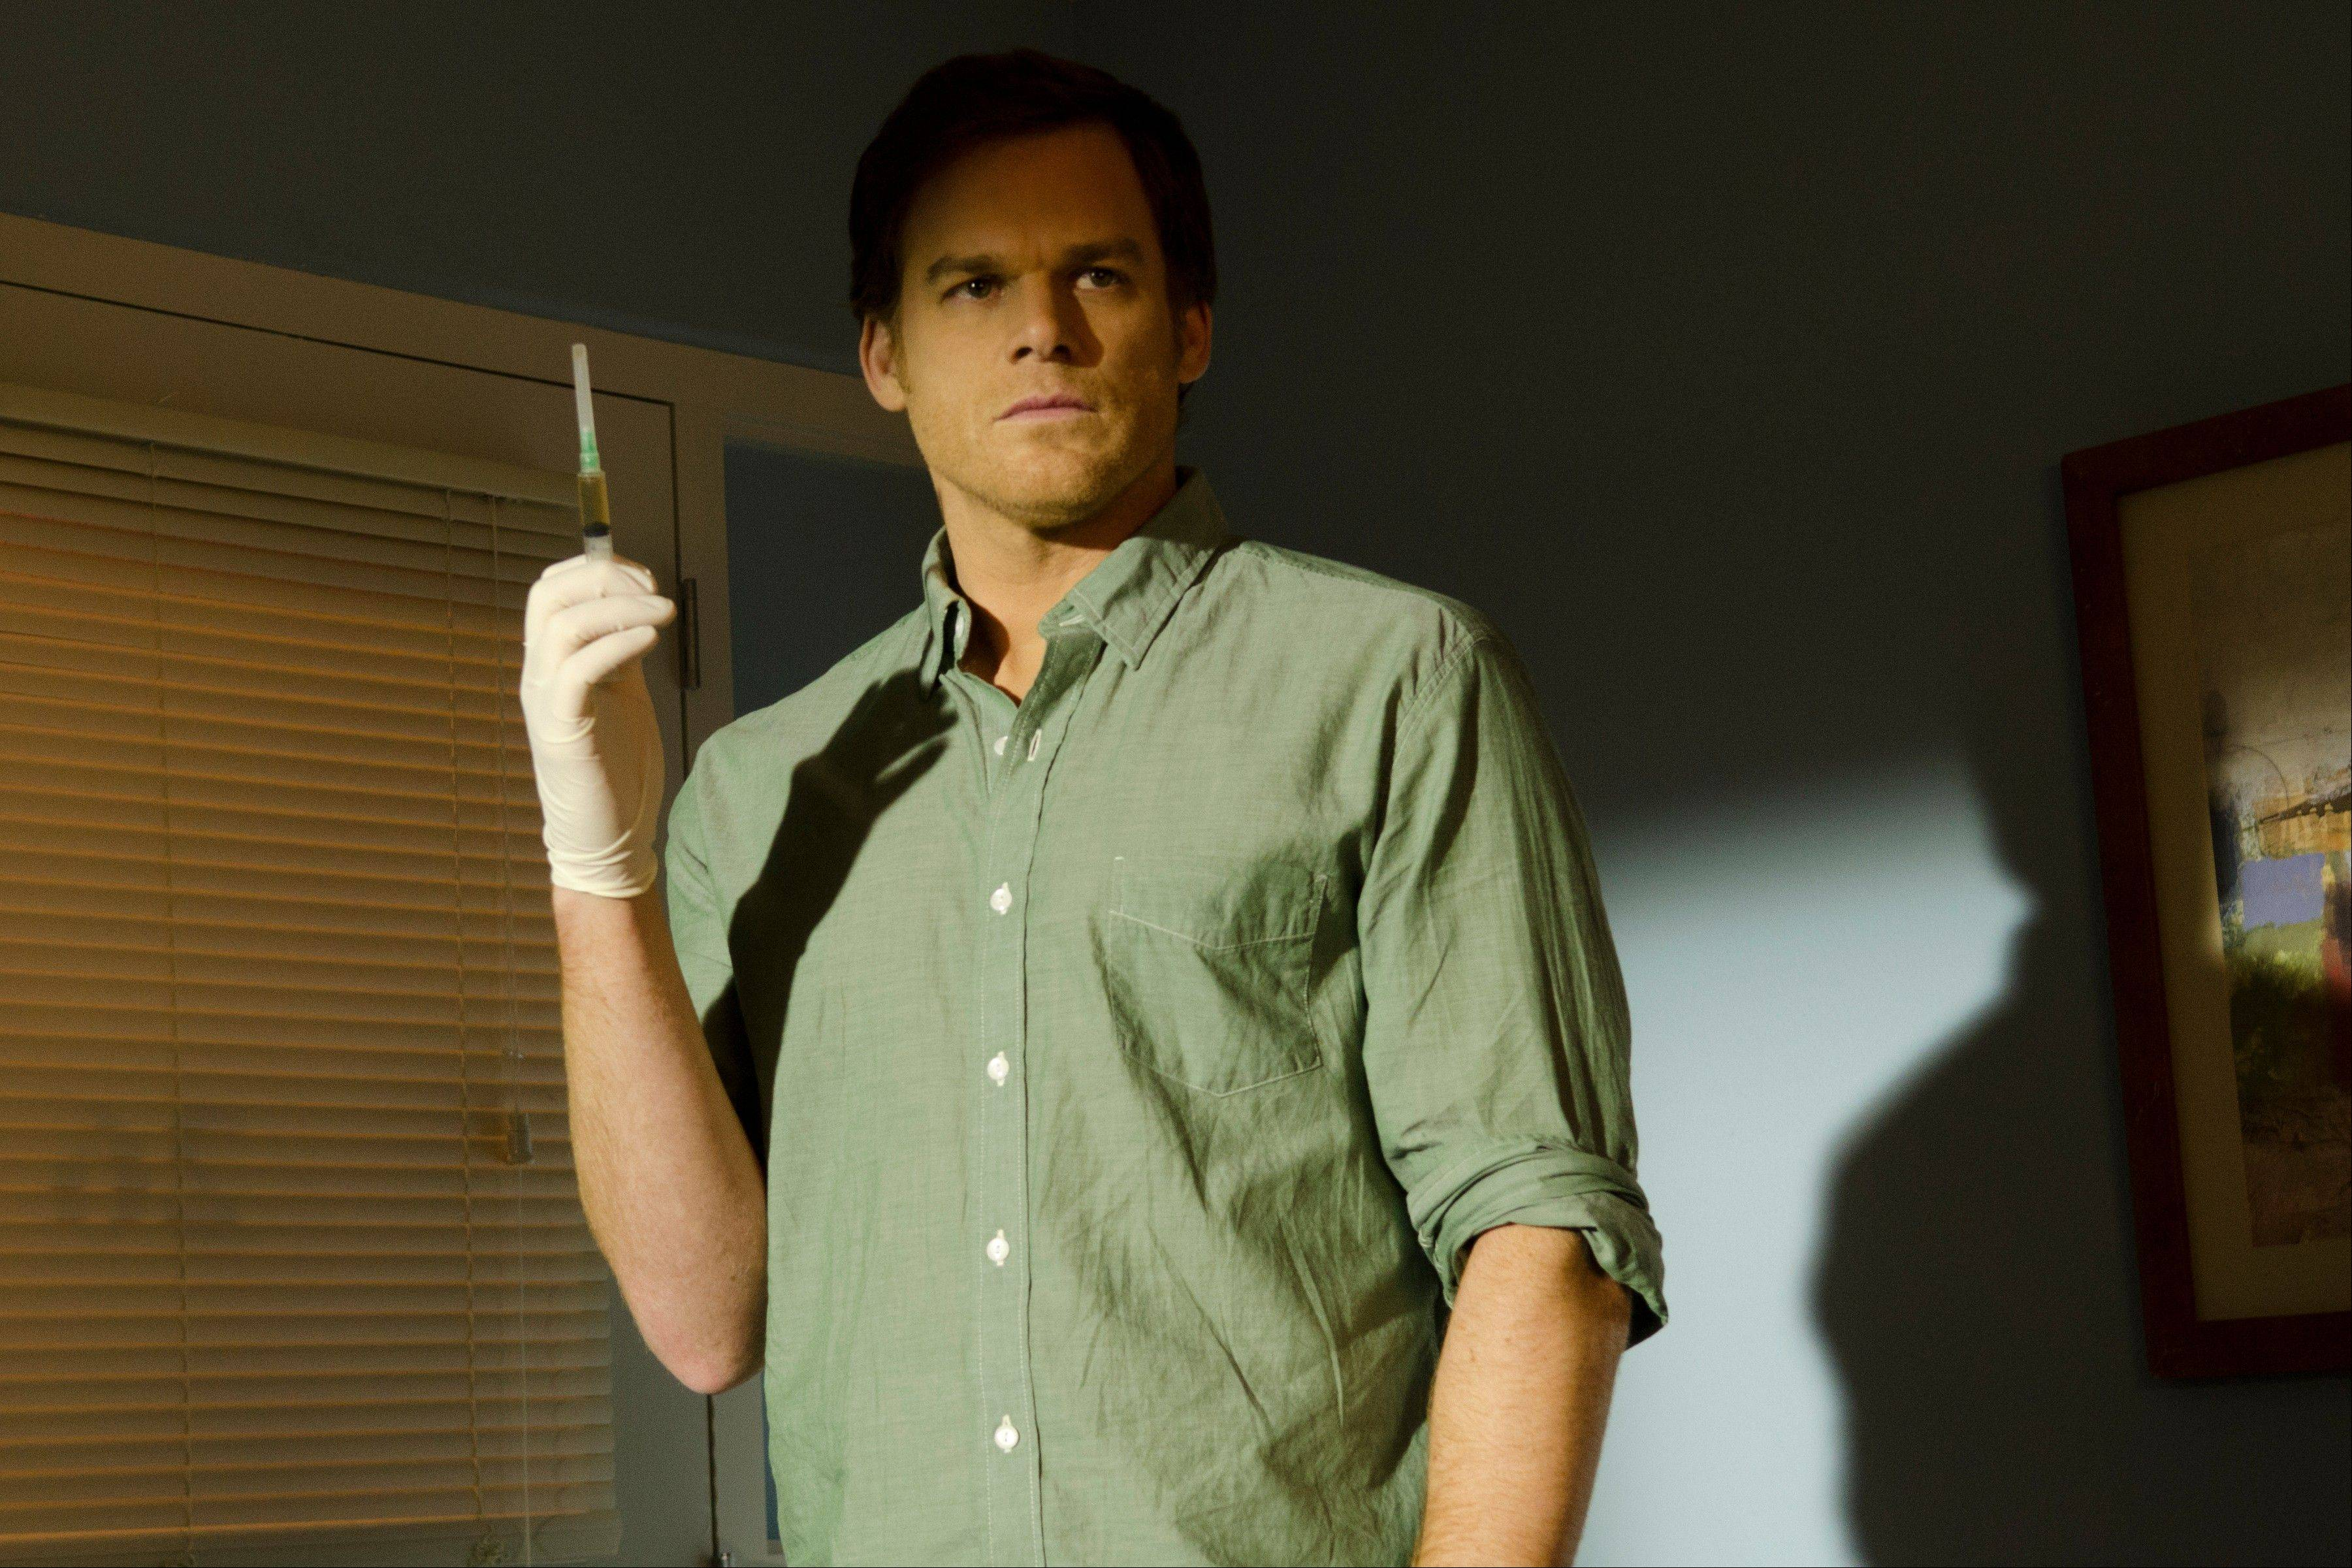 The finale of Showtime�s �Dexter,� with Michael C. Hall as Dexter Morgan, didn�t live up to the series� or fans� expectations.